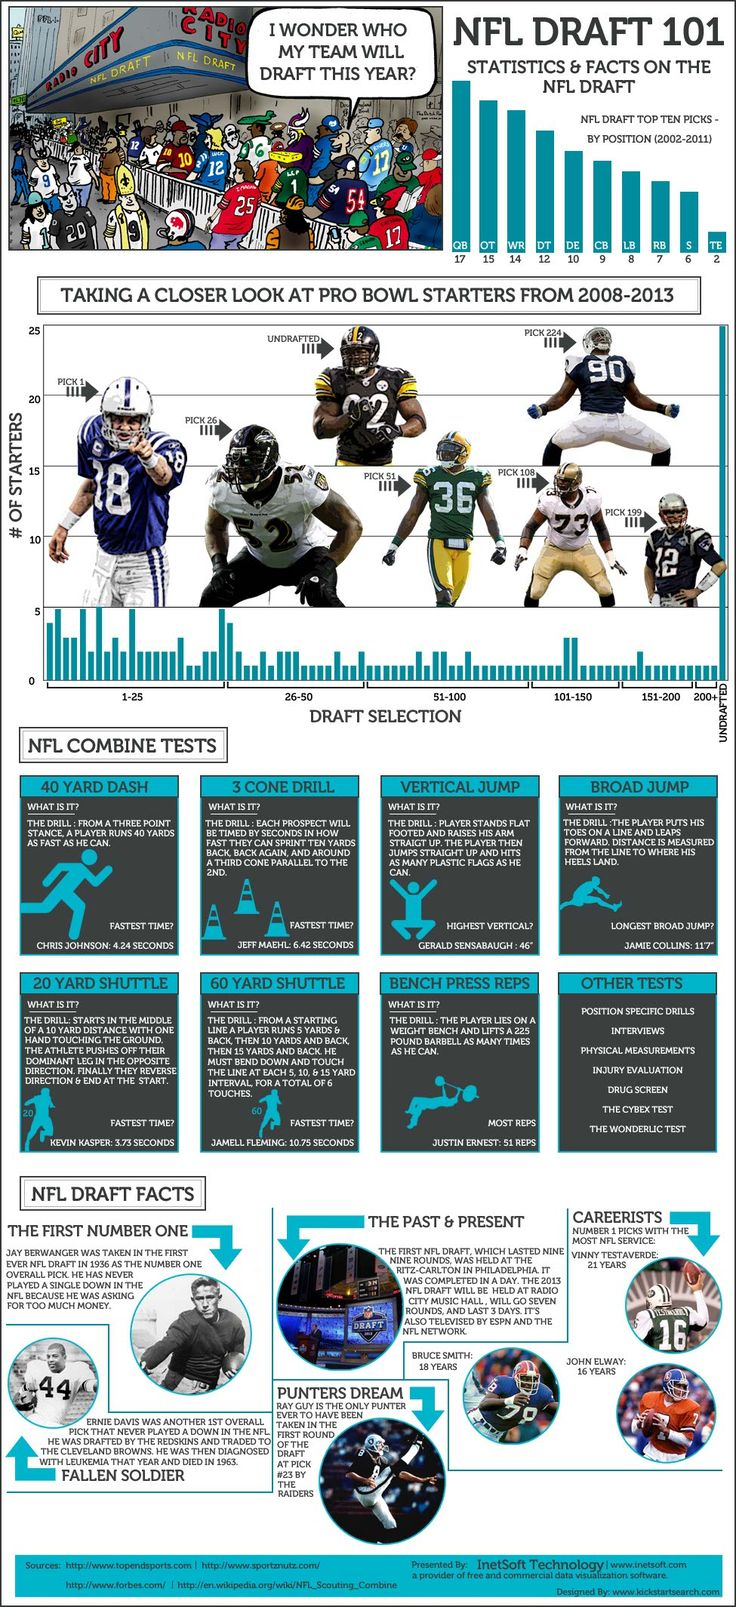 #INFOgraphic > NFL Draft Stats: NFL Draft 2013 is closing. Maybe youd like to have a look at some stats and facts about the top ten picks since 2002, pro bowl starters of the last 5 years who came from the draft and the top ranked players of the hard NFL combined test.  > http://infographicsmania.com/nfl-draft-stats/